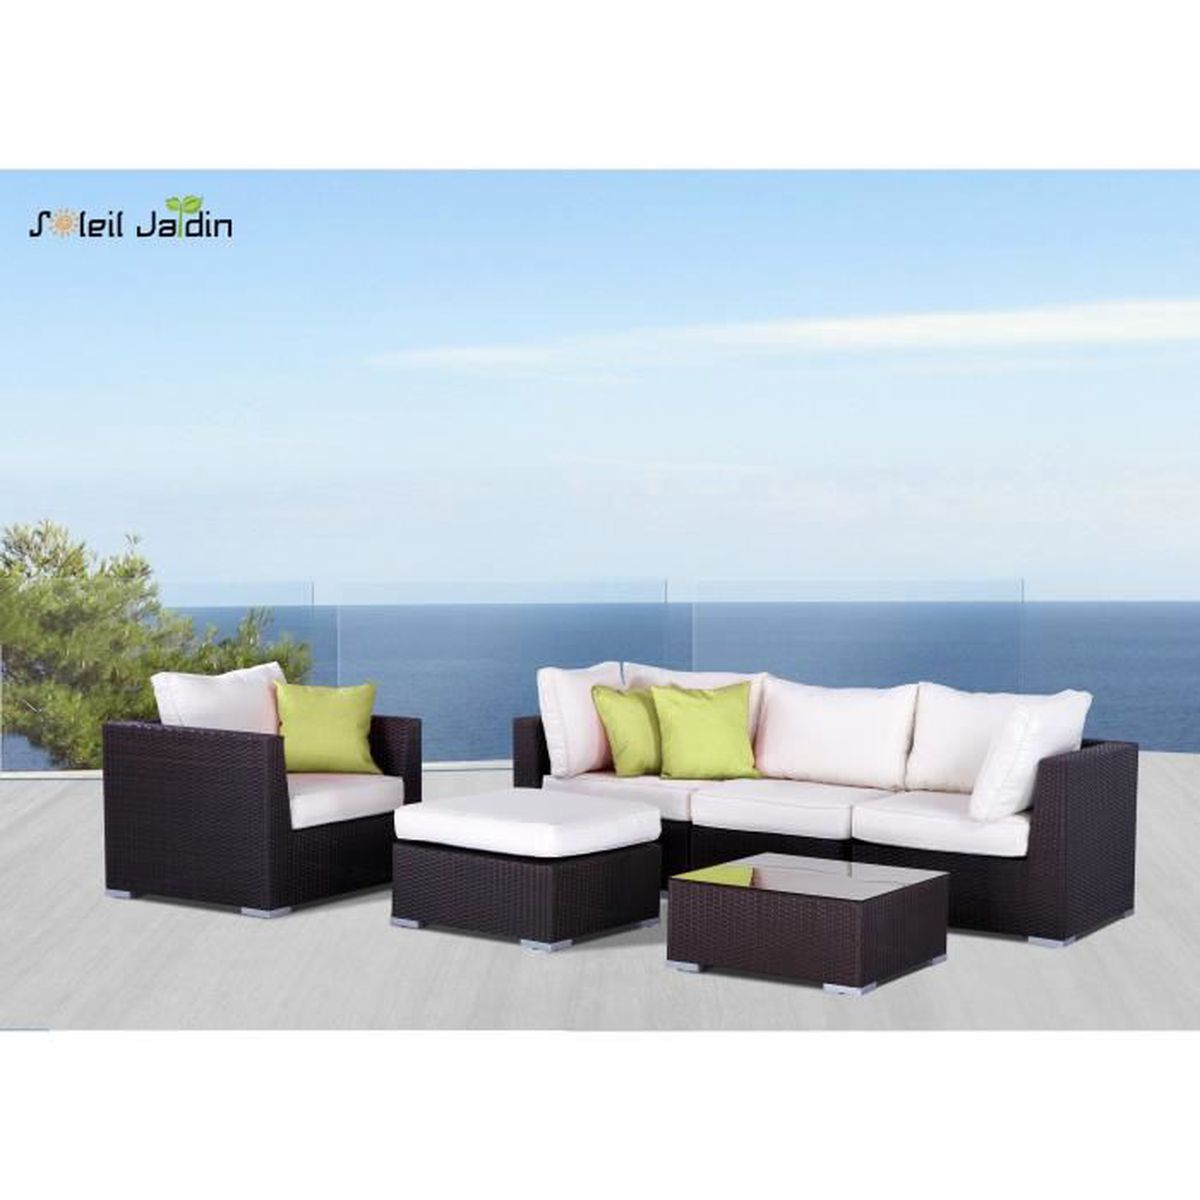 salon de jardin resine tressee cdiscount maison design. Black Bedroom Furniture Sets. Home Design Ideas